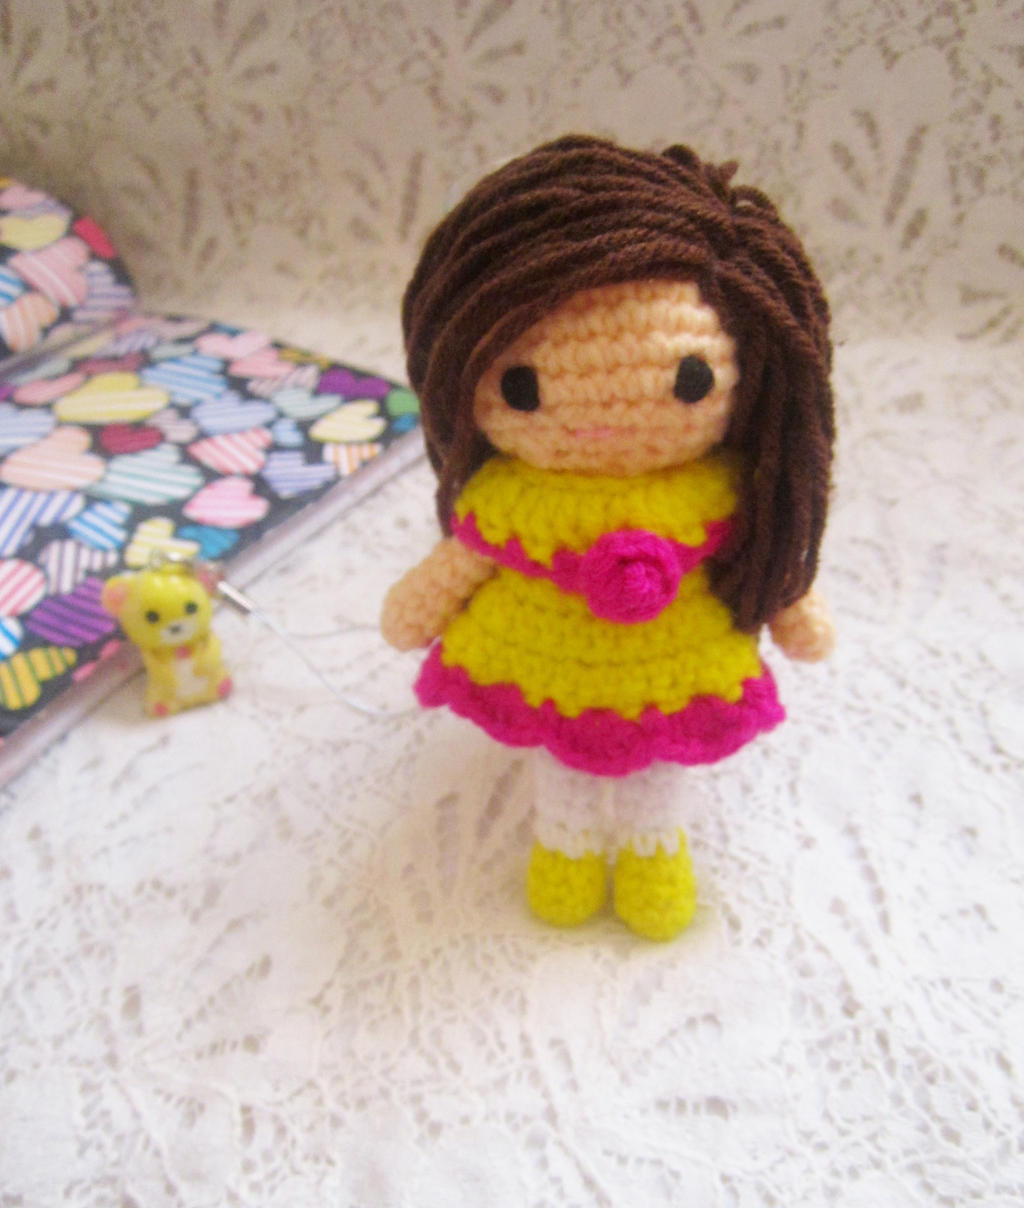 Small Amigurumi Doll Pattern : Little amigurumi doll free pattern by Anitadoma on DeviantArt